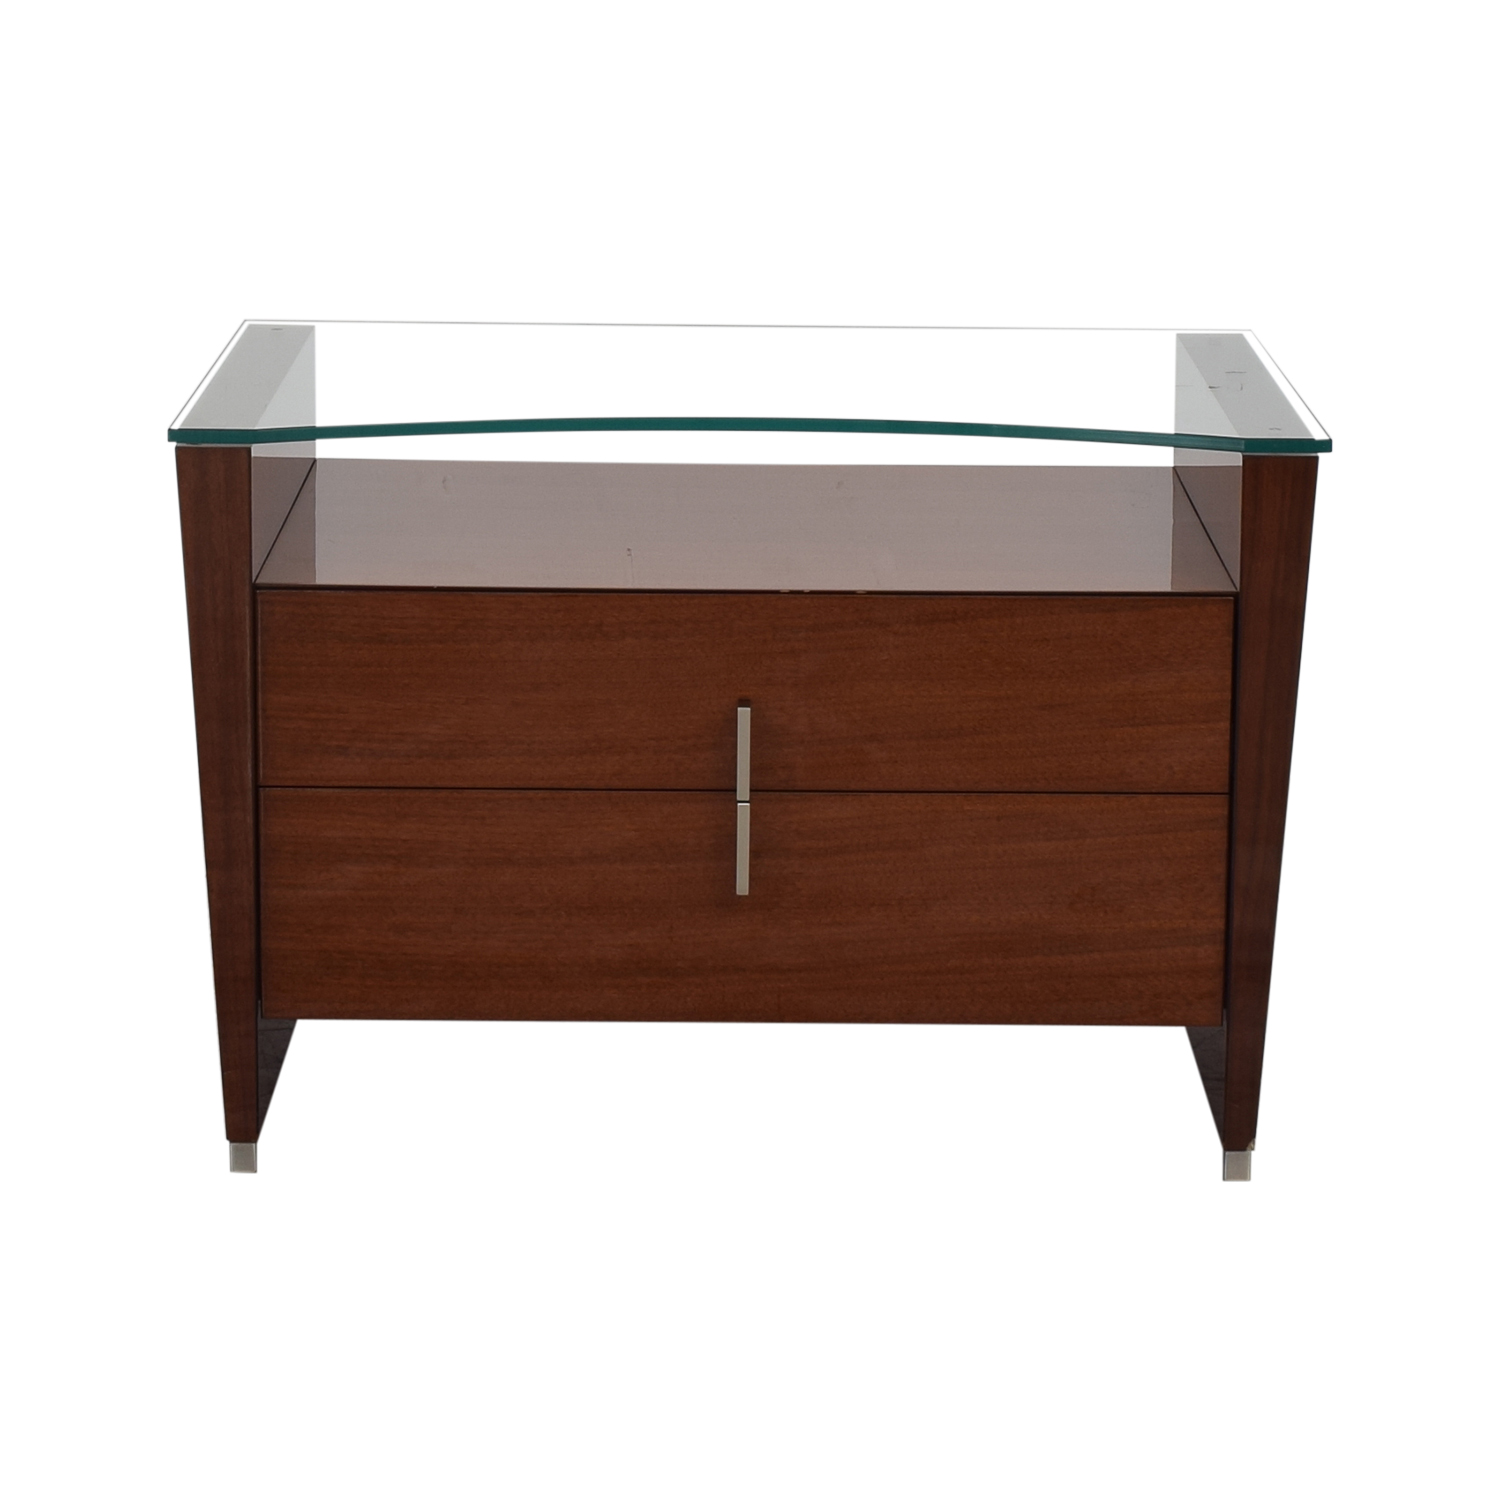 77 Off Dark Brown Nightstand With Transparent Shelf Tables